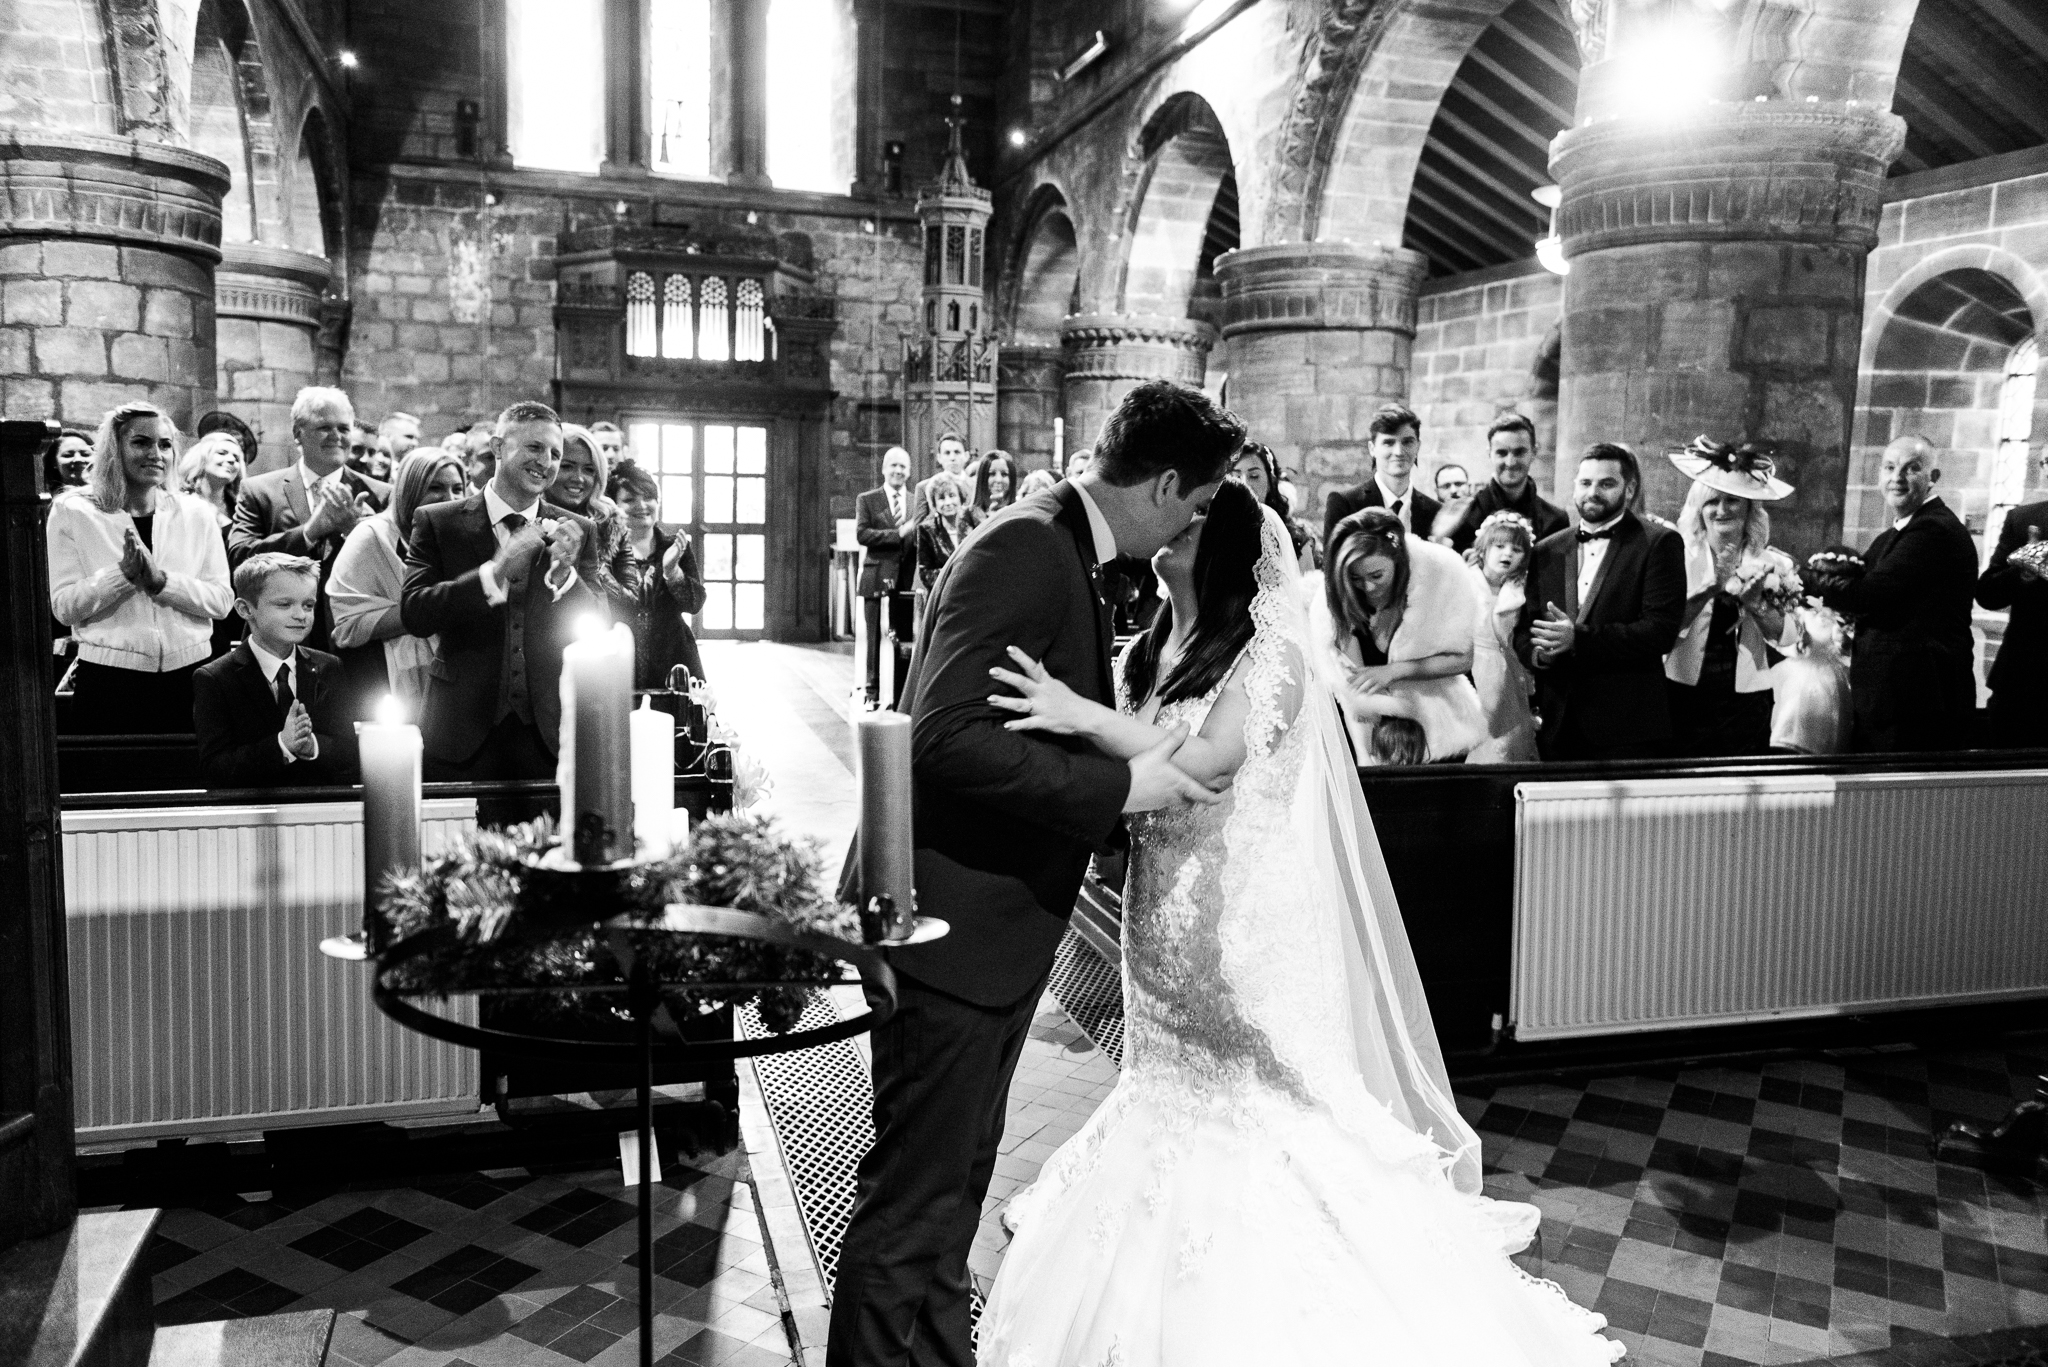 Winter Wedding Christmas Wedding Photography Stafford, Staffordshire Saint Chad Weston Hall Documentary Photographer - Jenny Harper-24.jpg